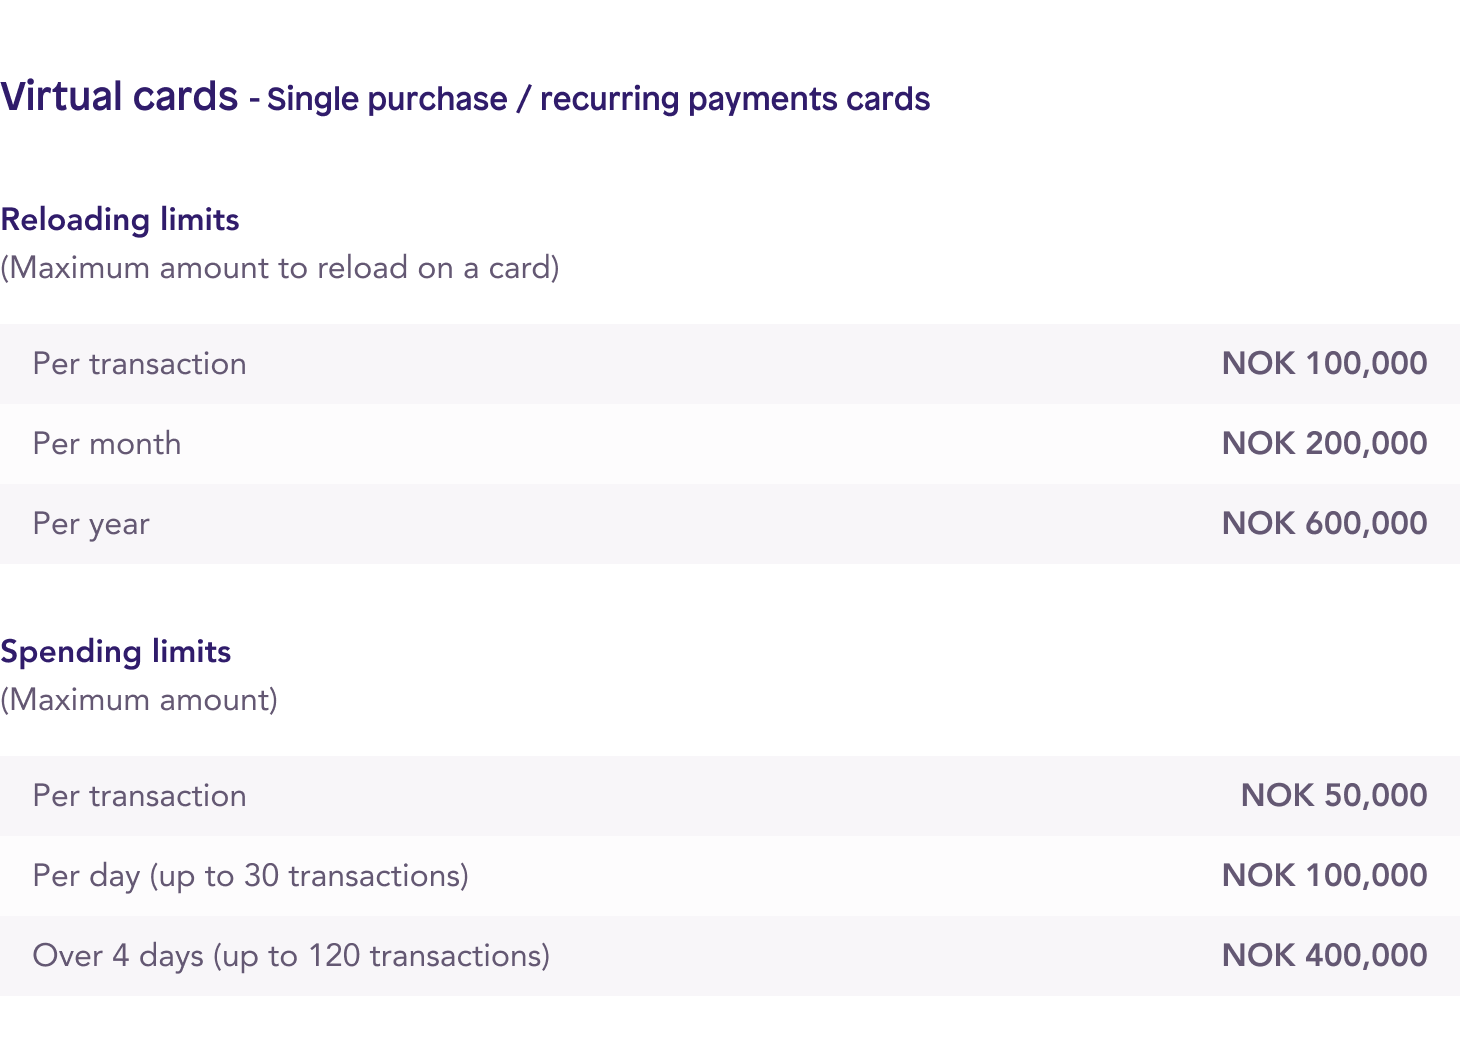 Spendesk virtual single purchase / recurring payments prepaid cards spending limits